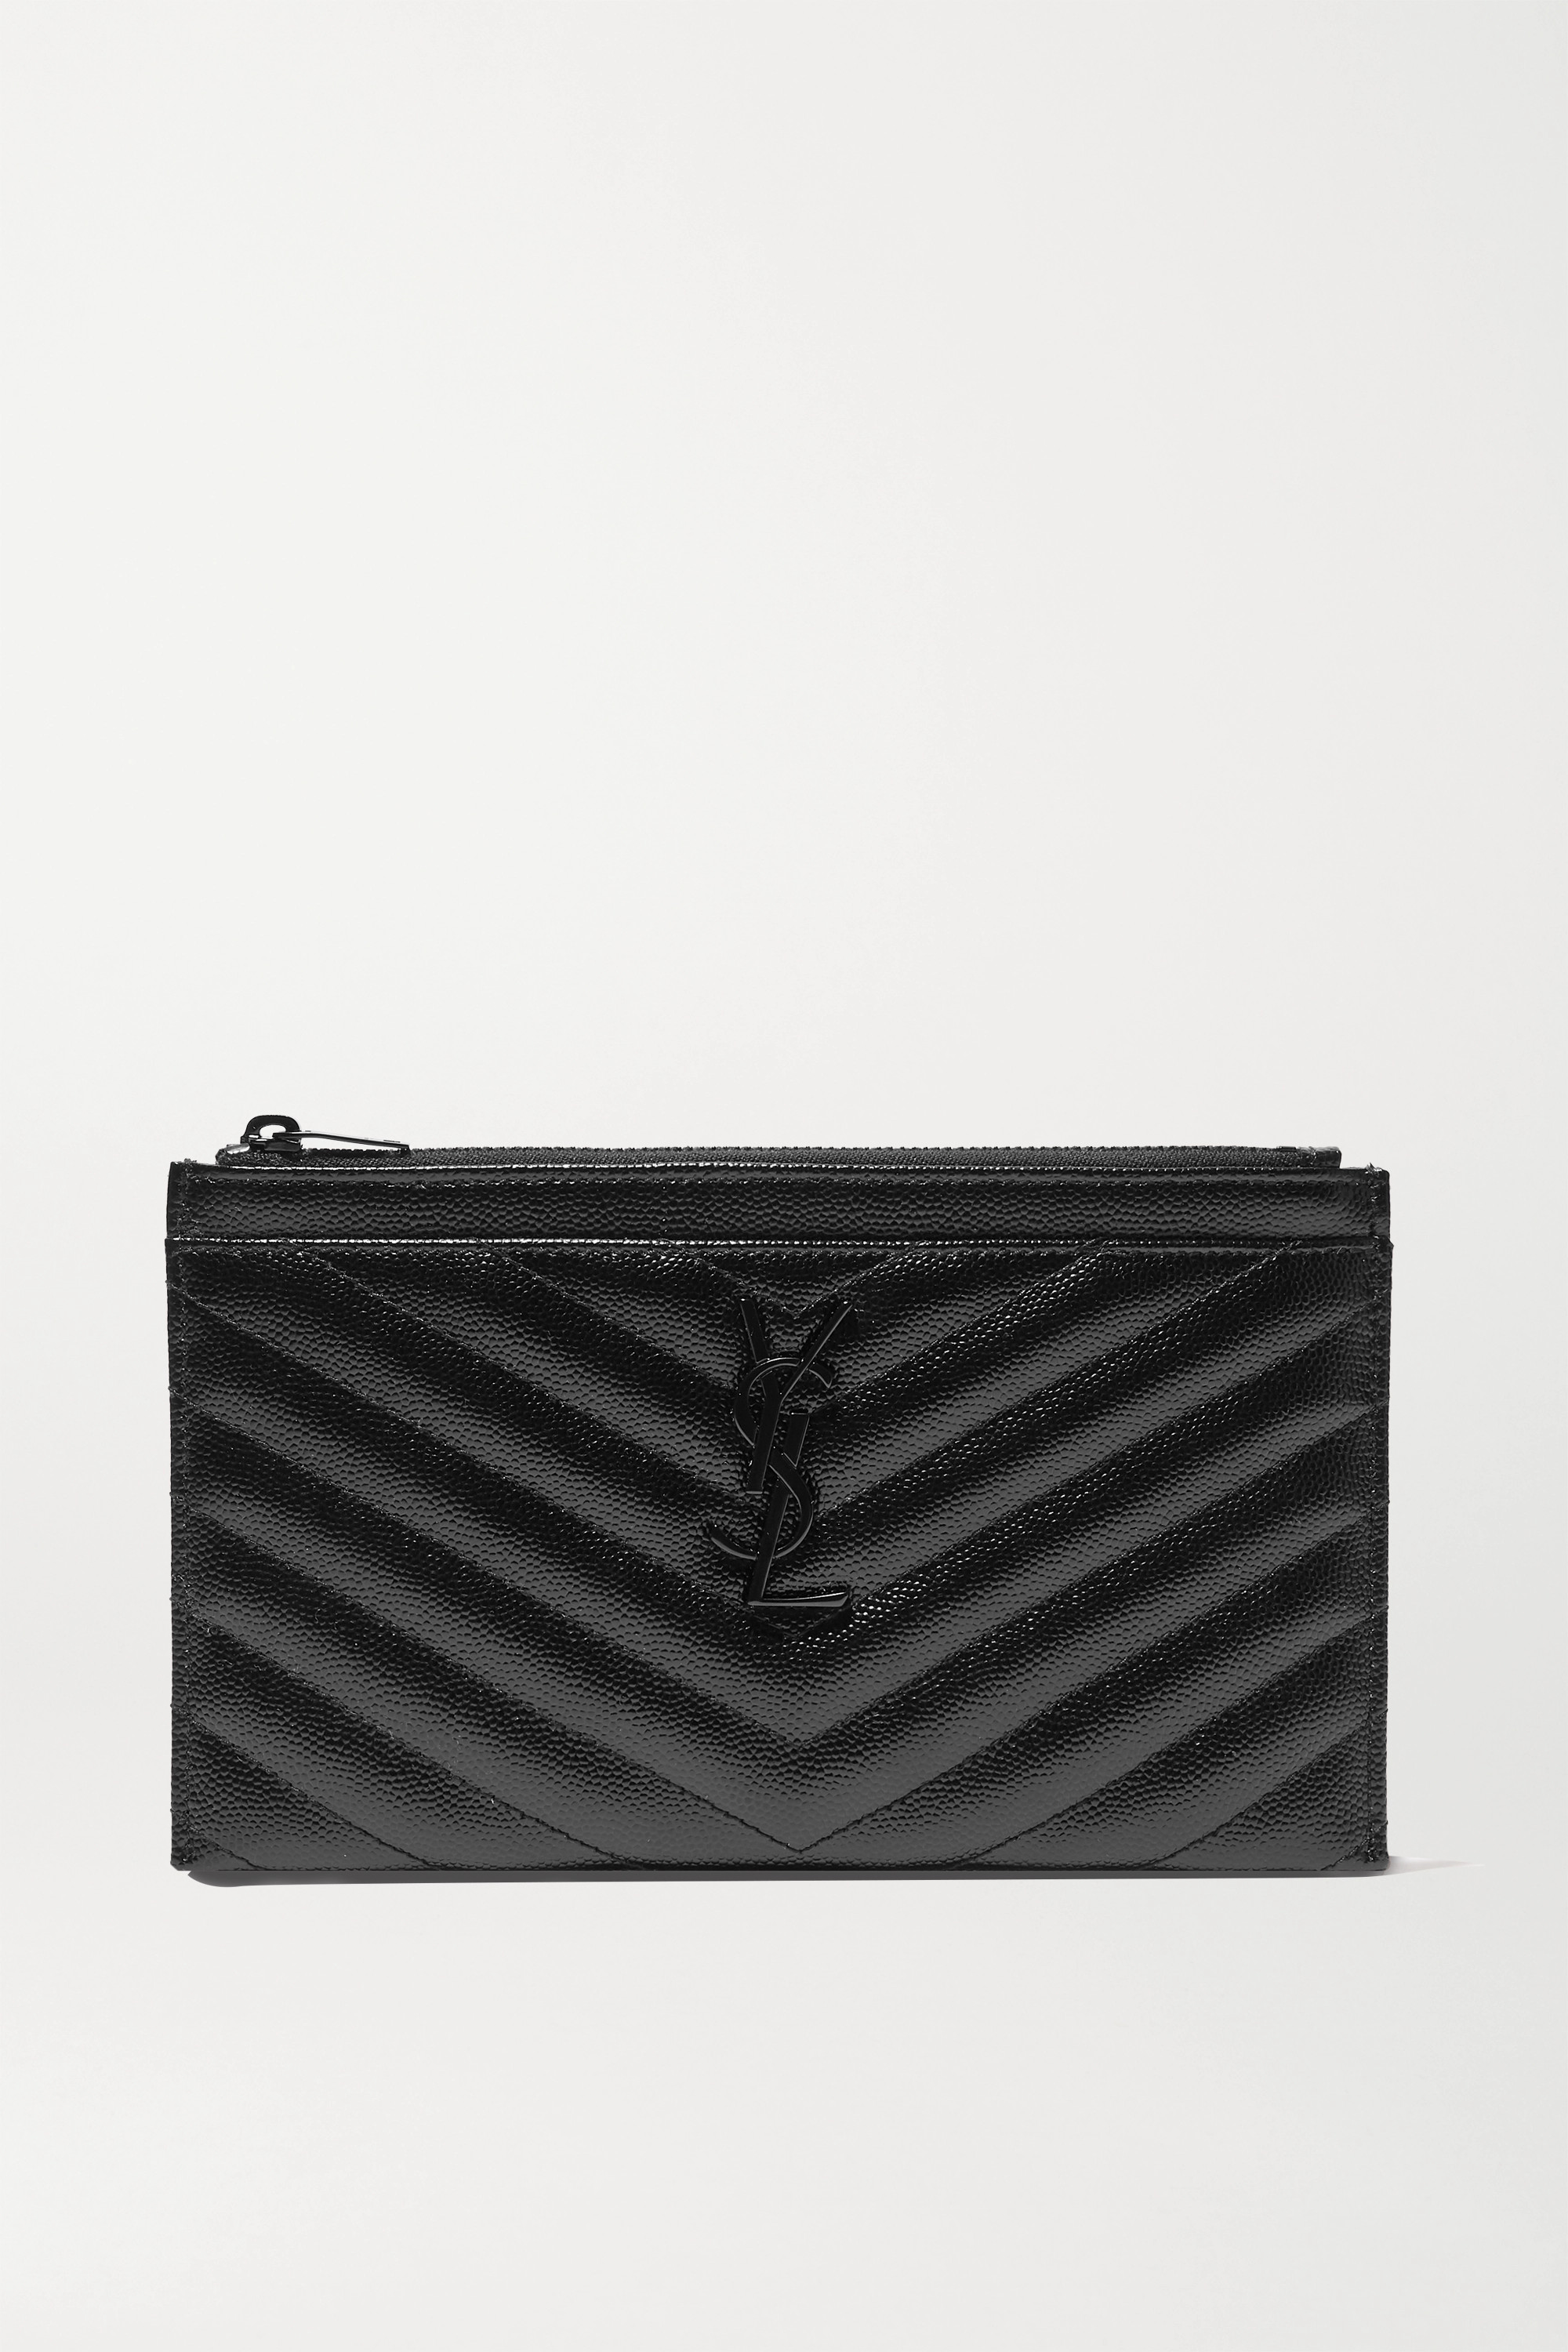 SAINT LAURENT - Monogramme quilted textured-leather pouch